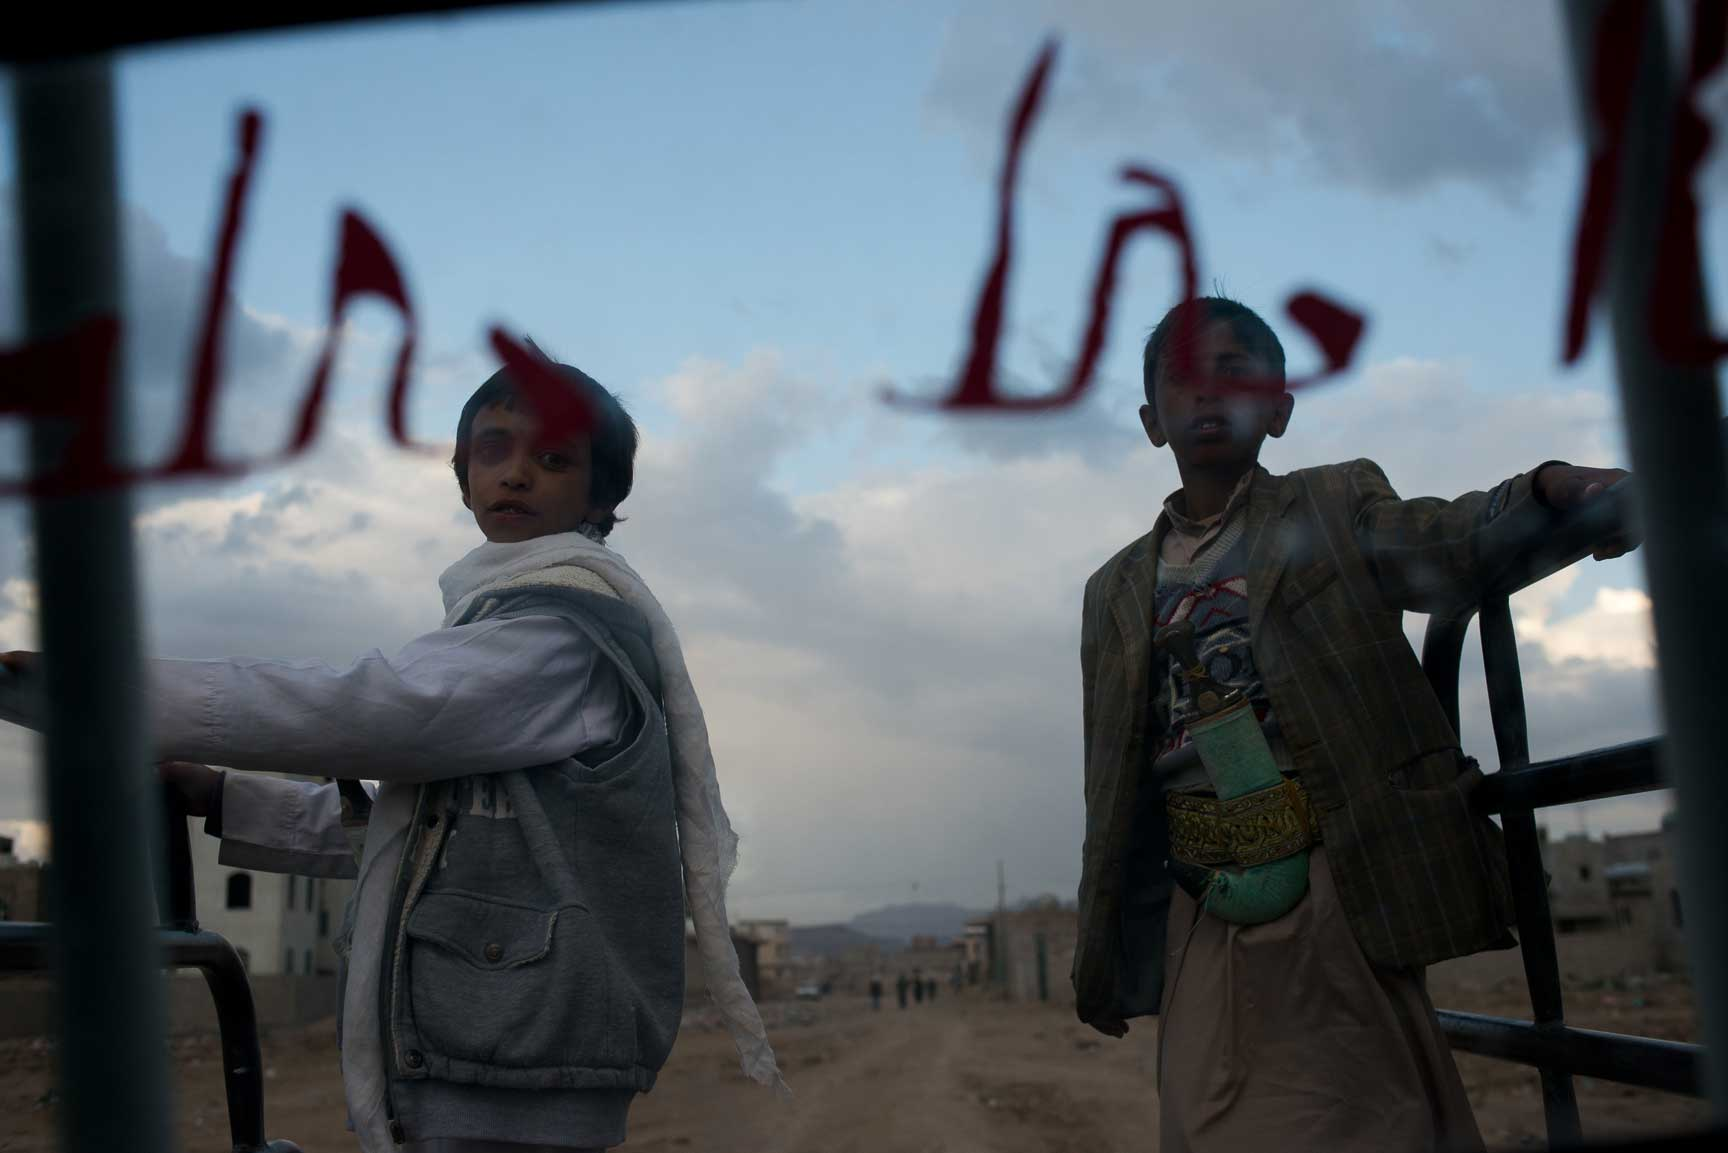 Yemeni boys hitch a ride on the back of a pickup truck on the outskirts of the capital on May 29, 2015. The lack of fuel has severely limited movement for Yemeni's, especially effecting those who need to get to hospitals quickly after airstrikes.